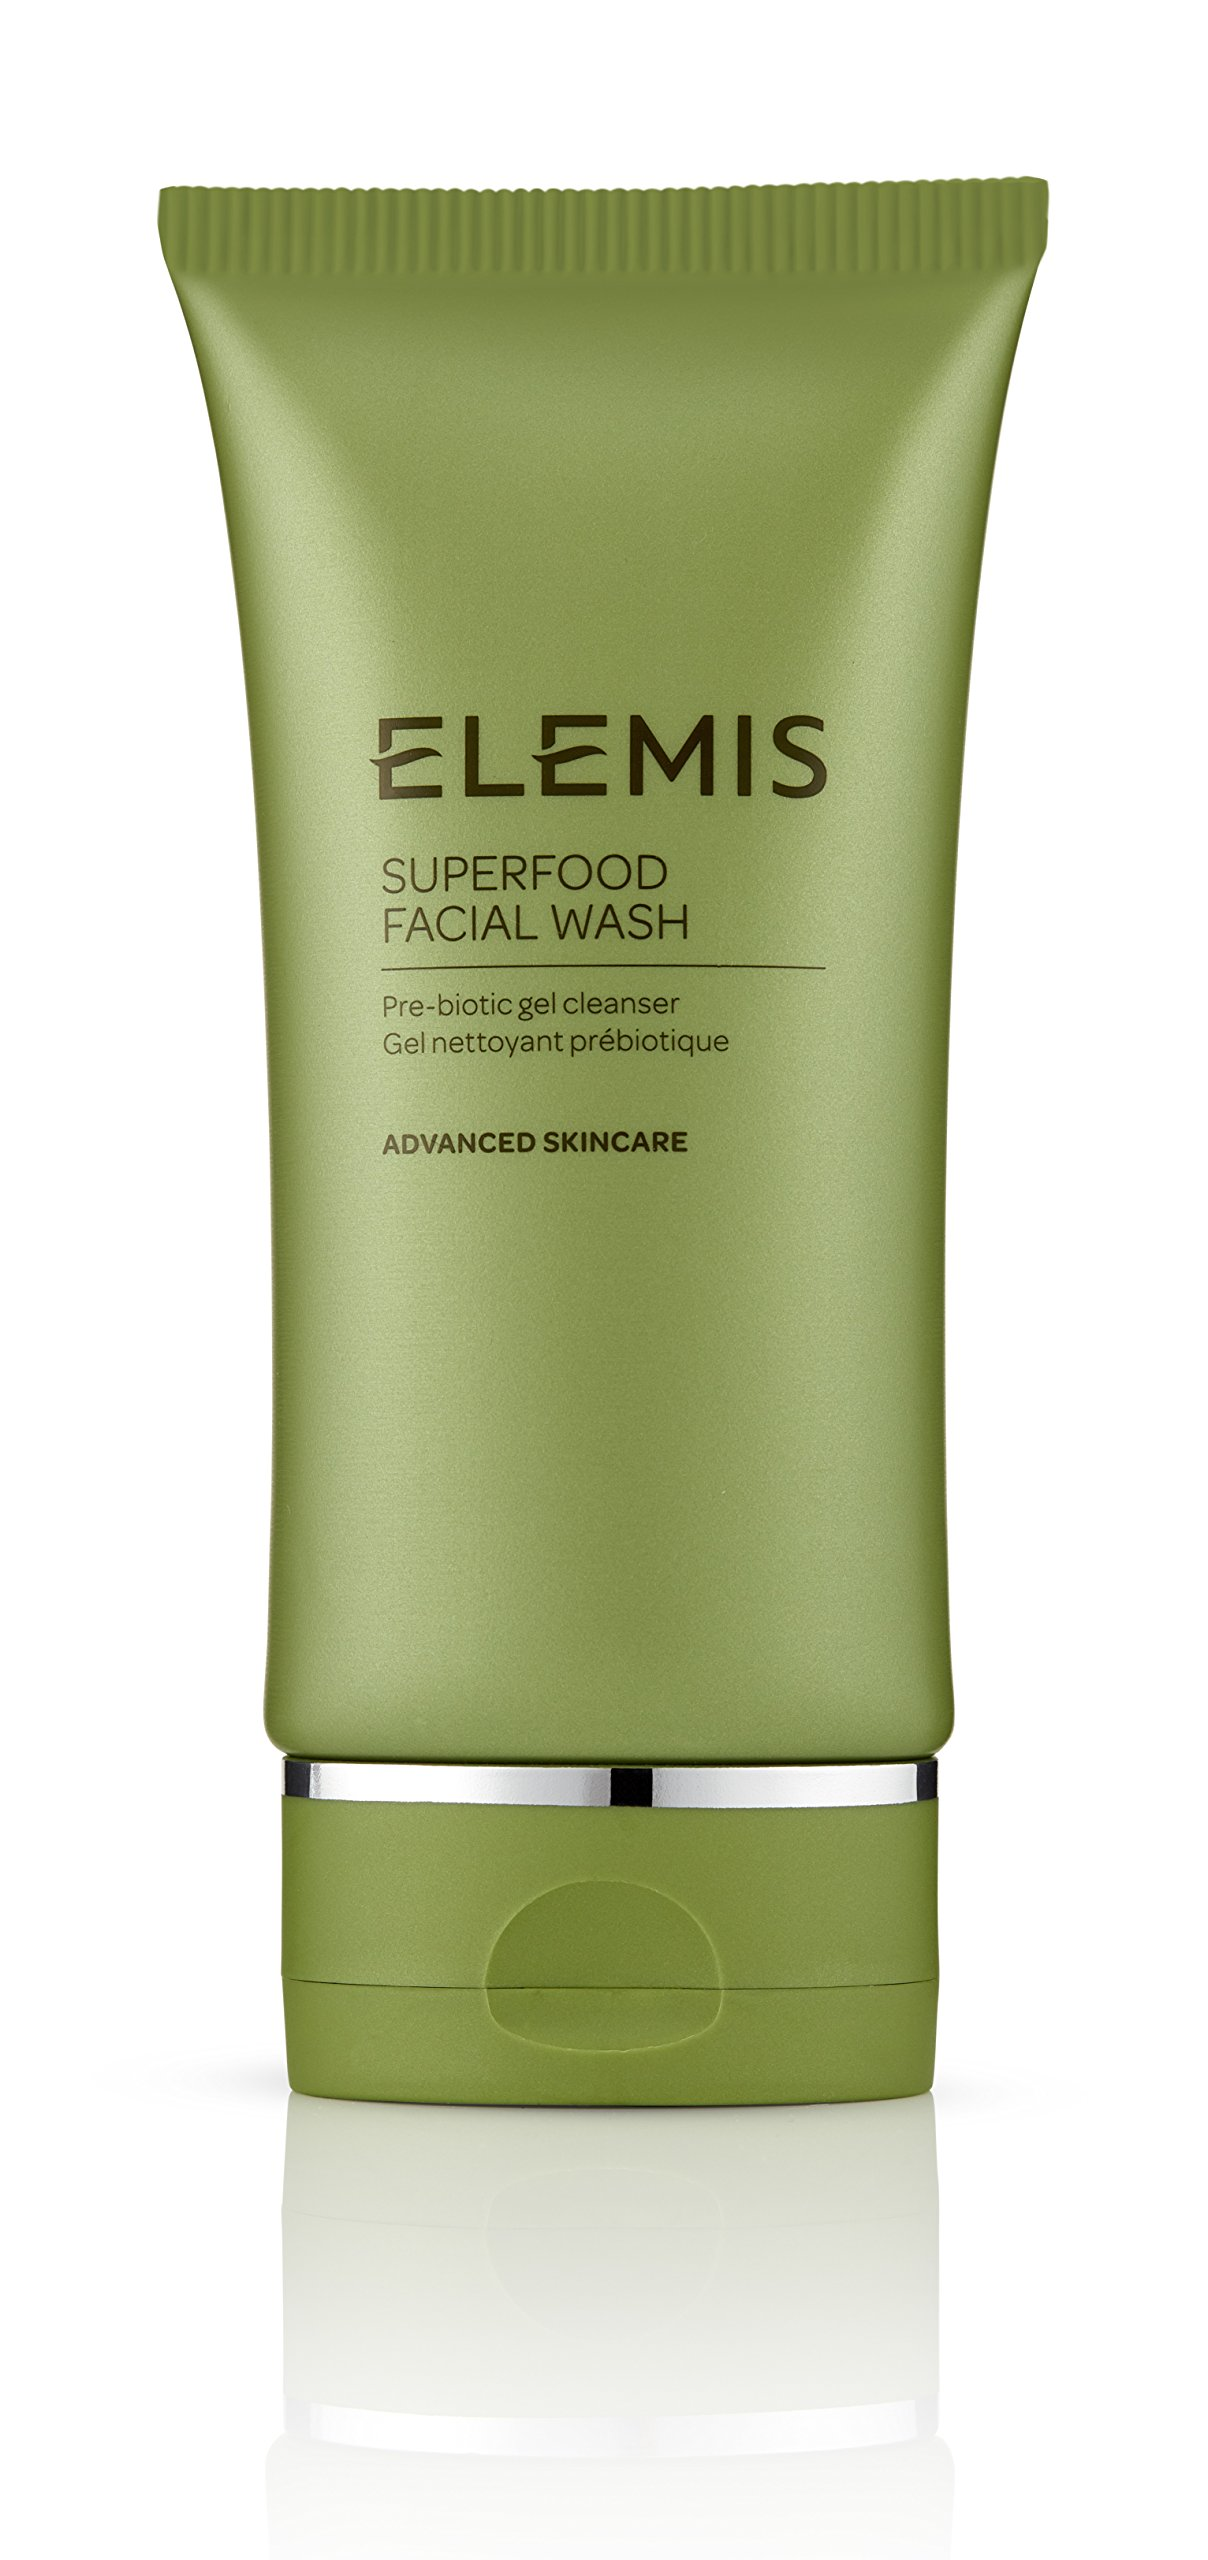 Elemis - ELEMIS Superfood Facial Wash - Nourishing, Nutrient-dense Gel Cleanser, 5 fl. oz.